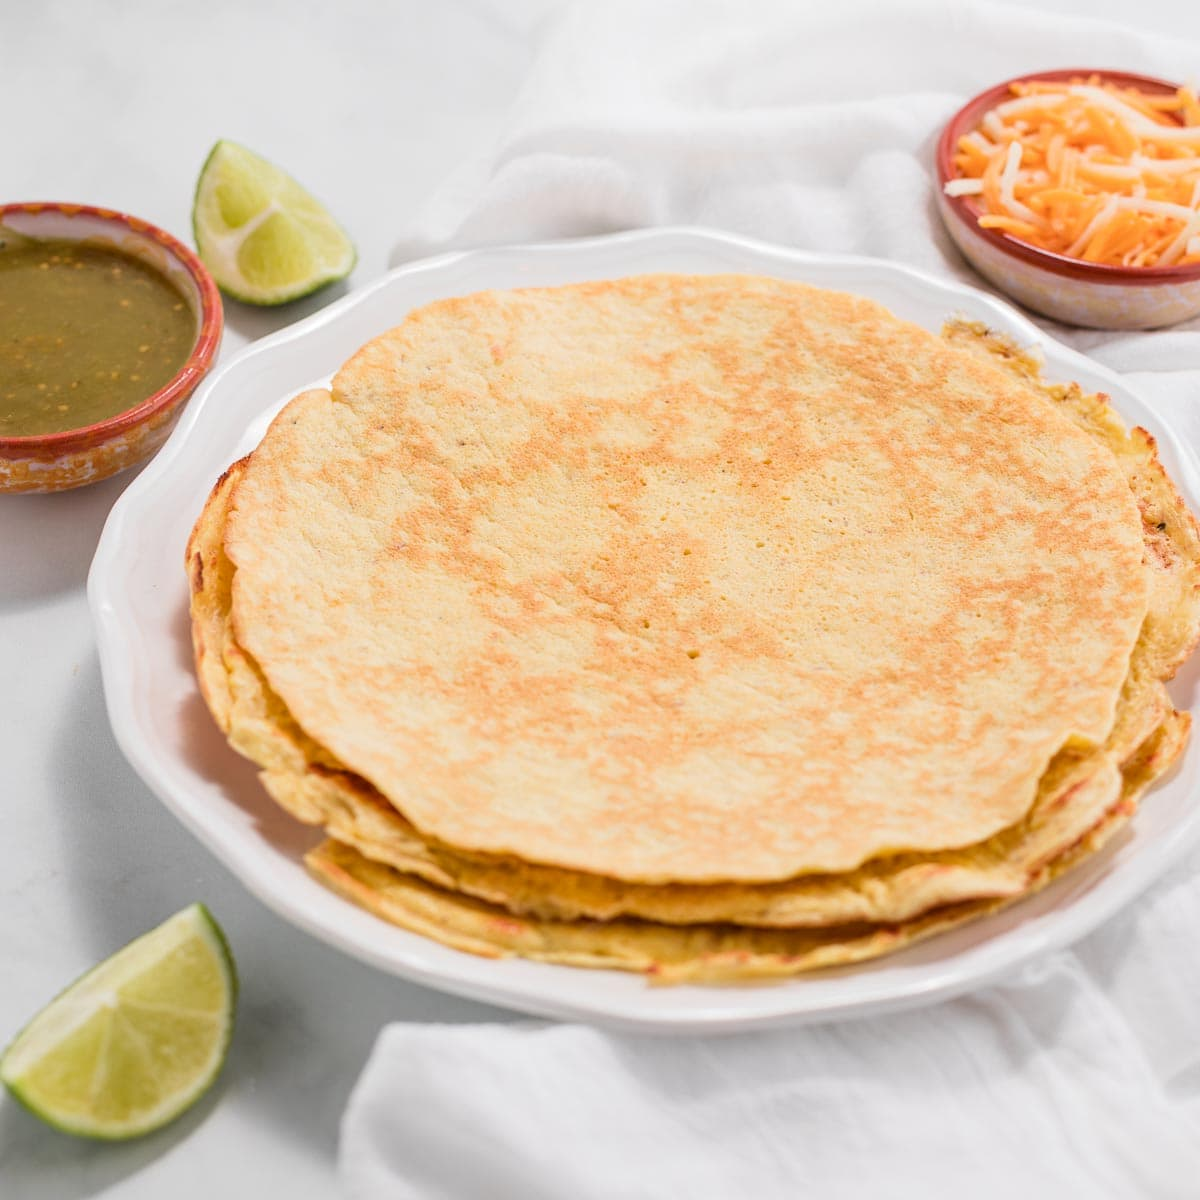 A stack of low carb tortillas.